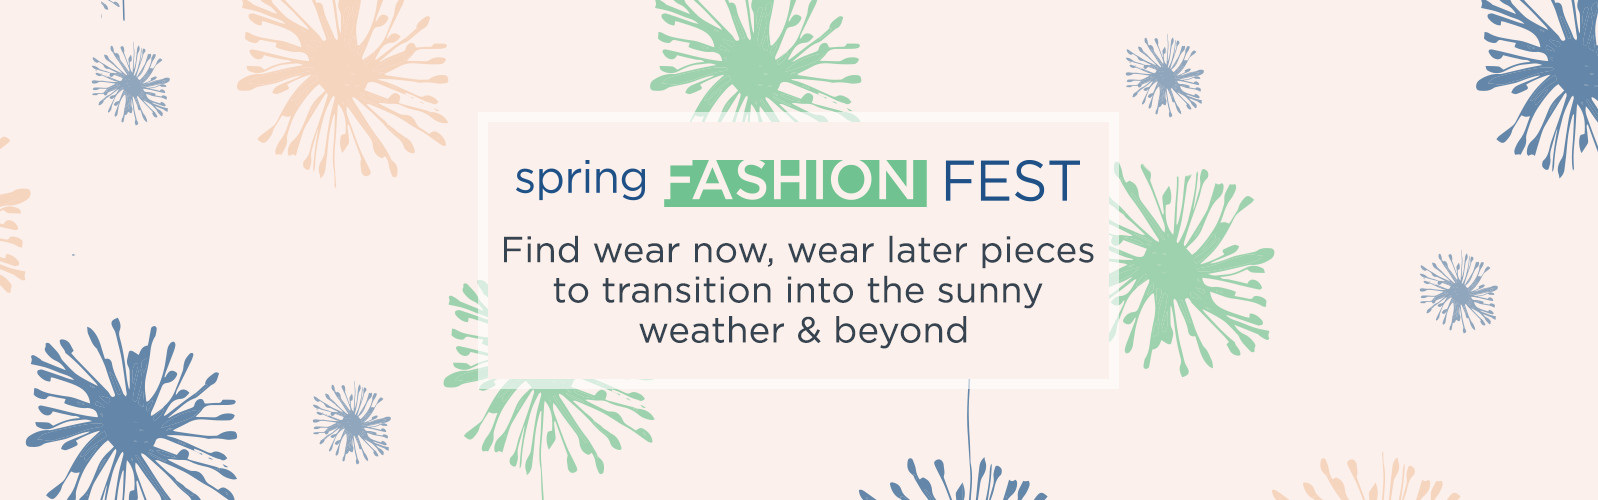 Spring Fashion Fest. Find wear now, wear later pieces to transition into the sunny weather & beyond